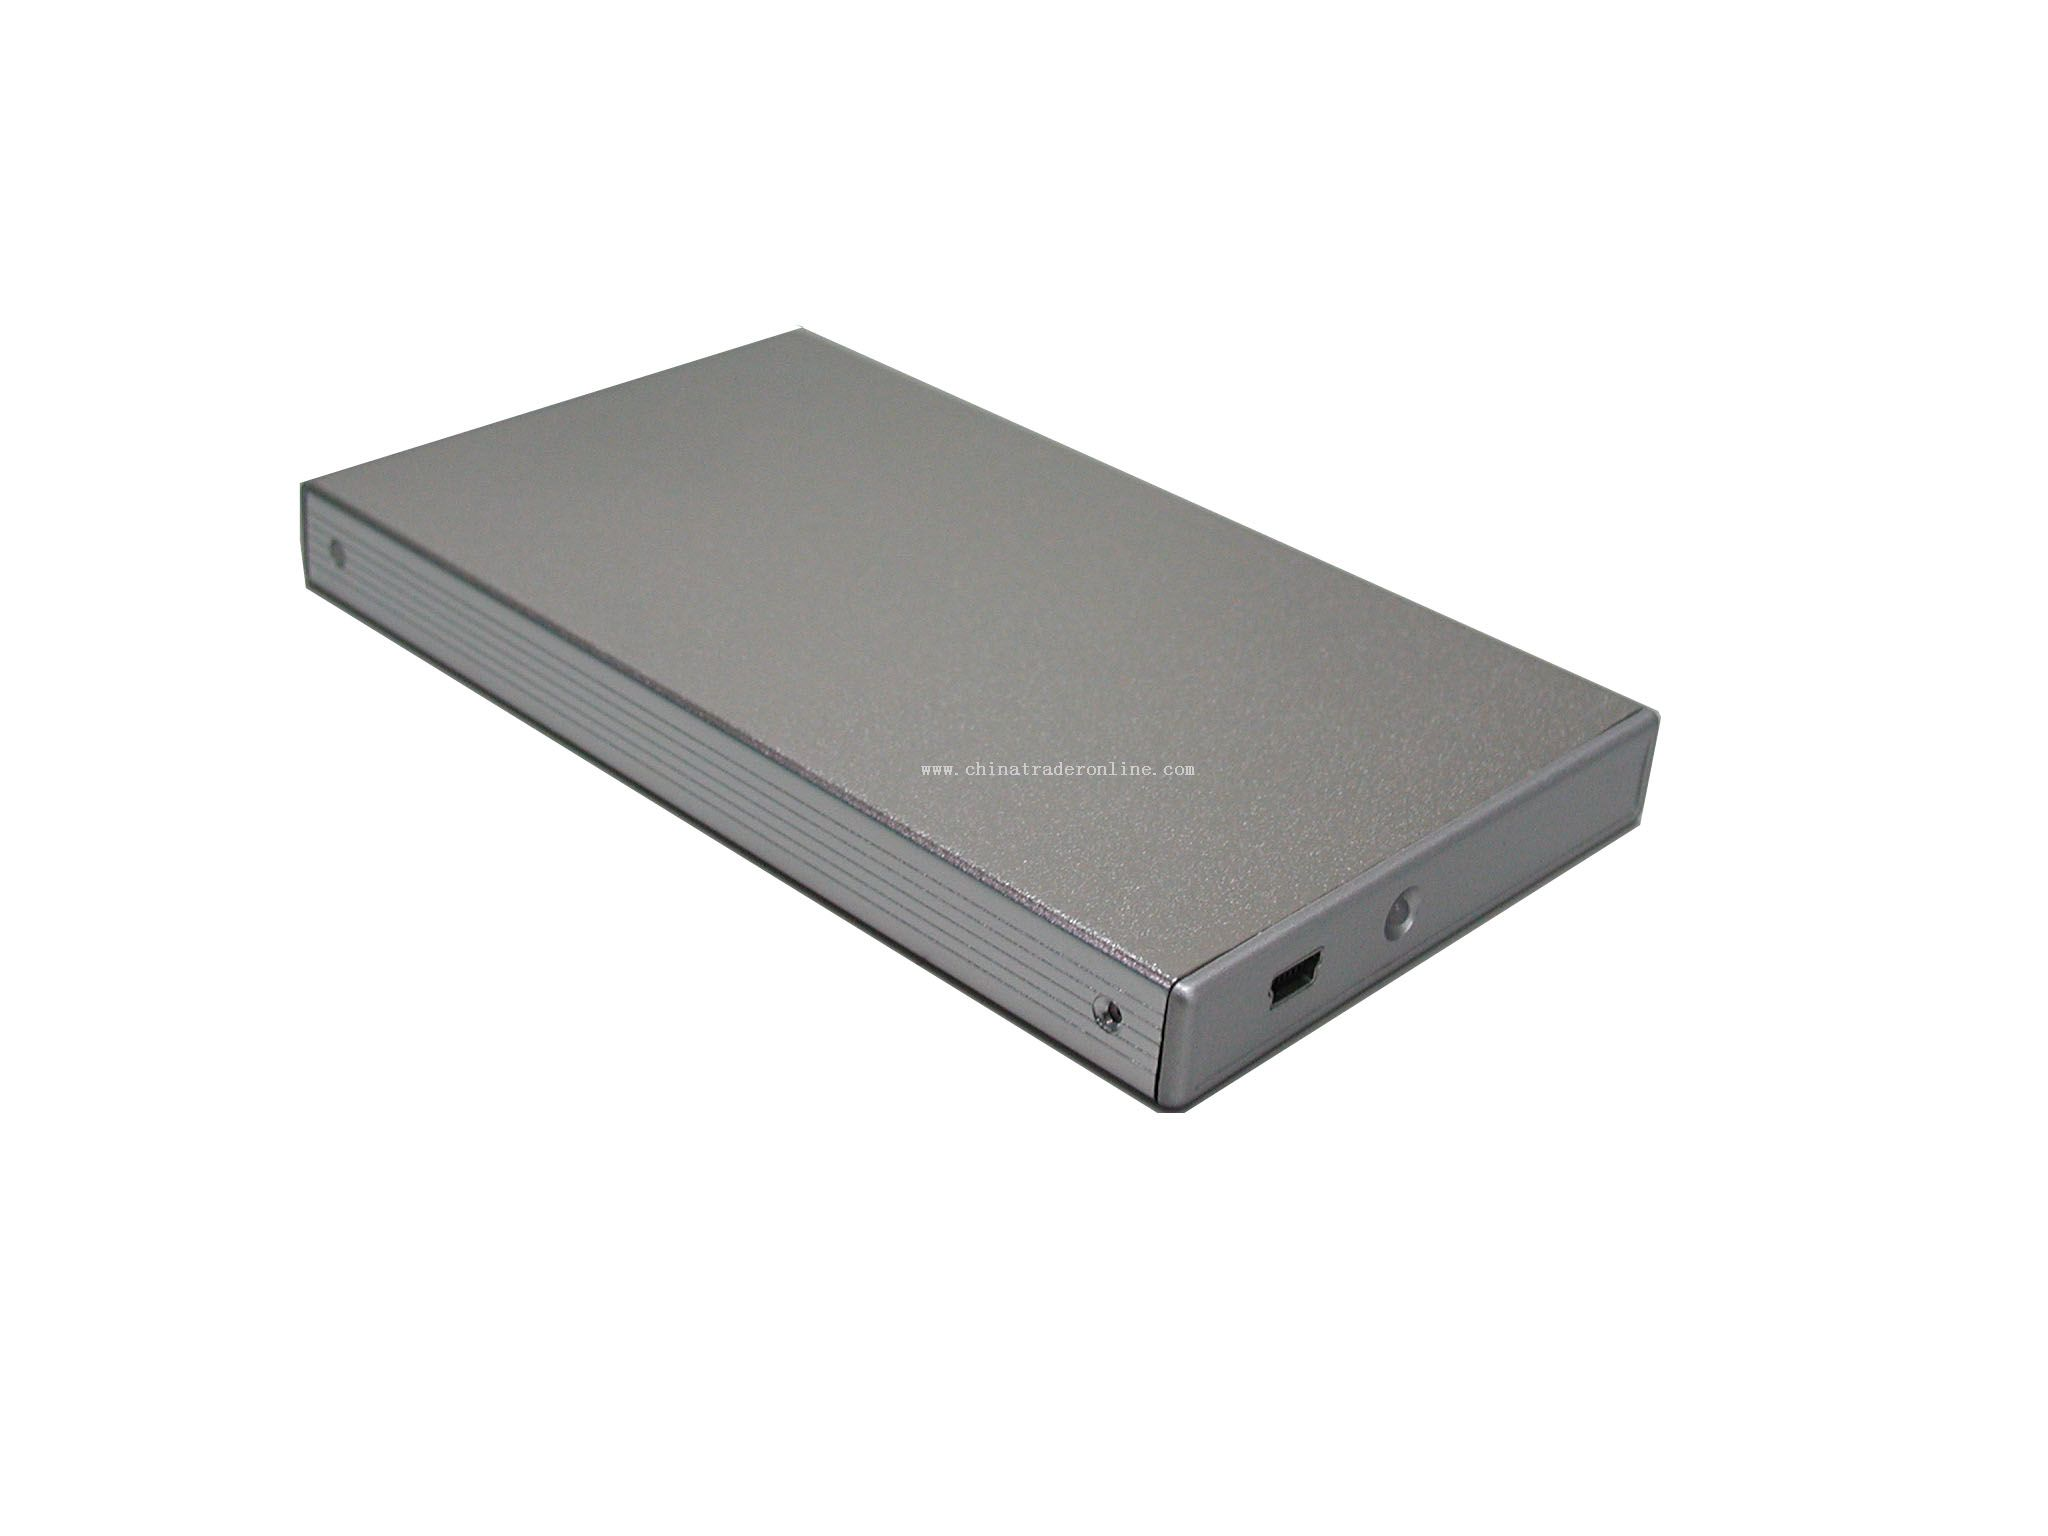 Slim 2.5 HD Drive from China